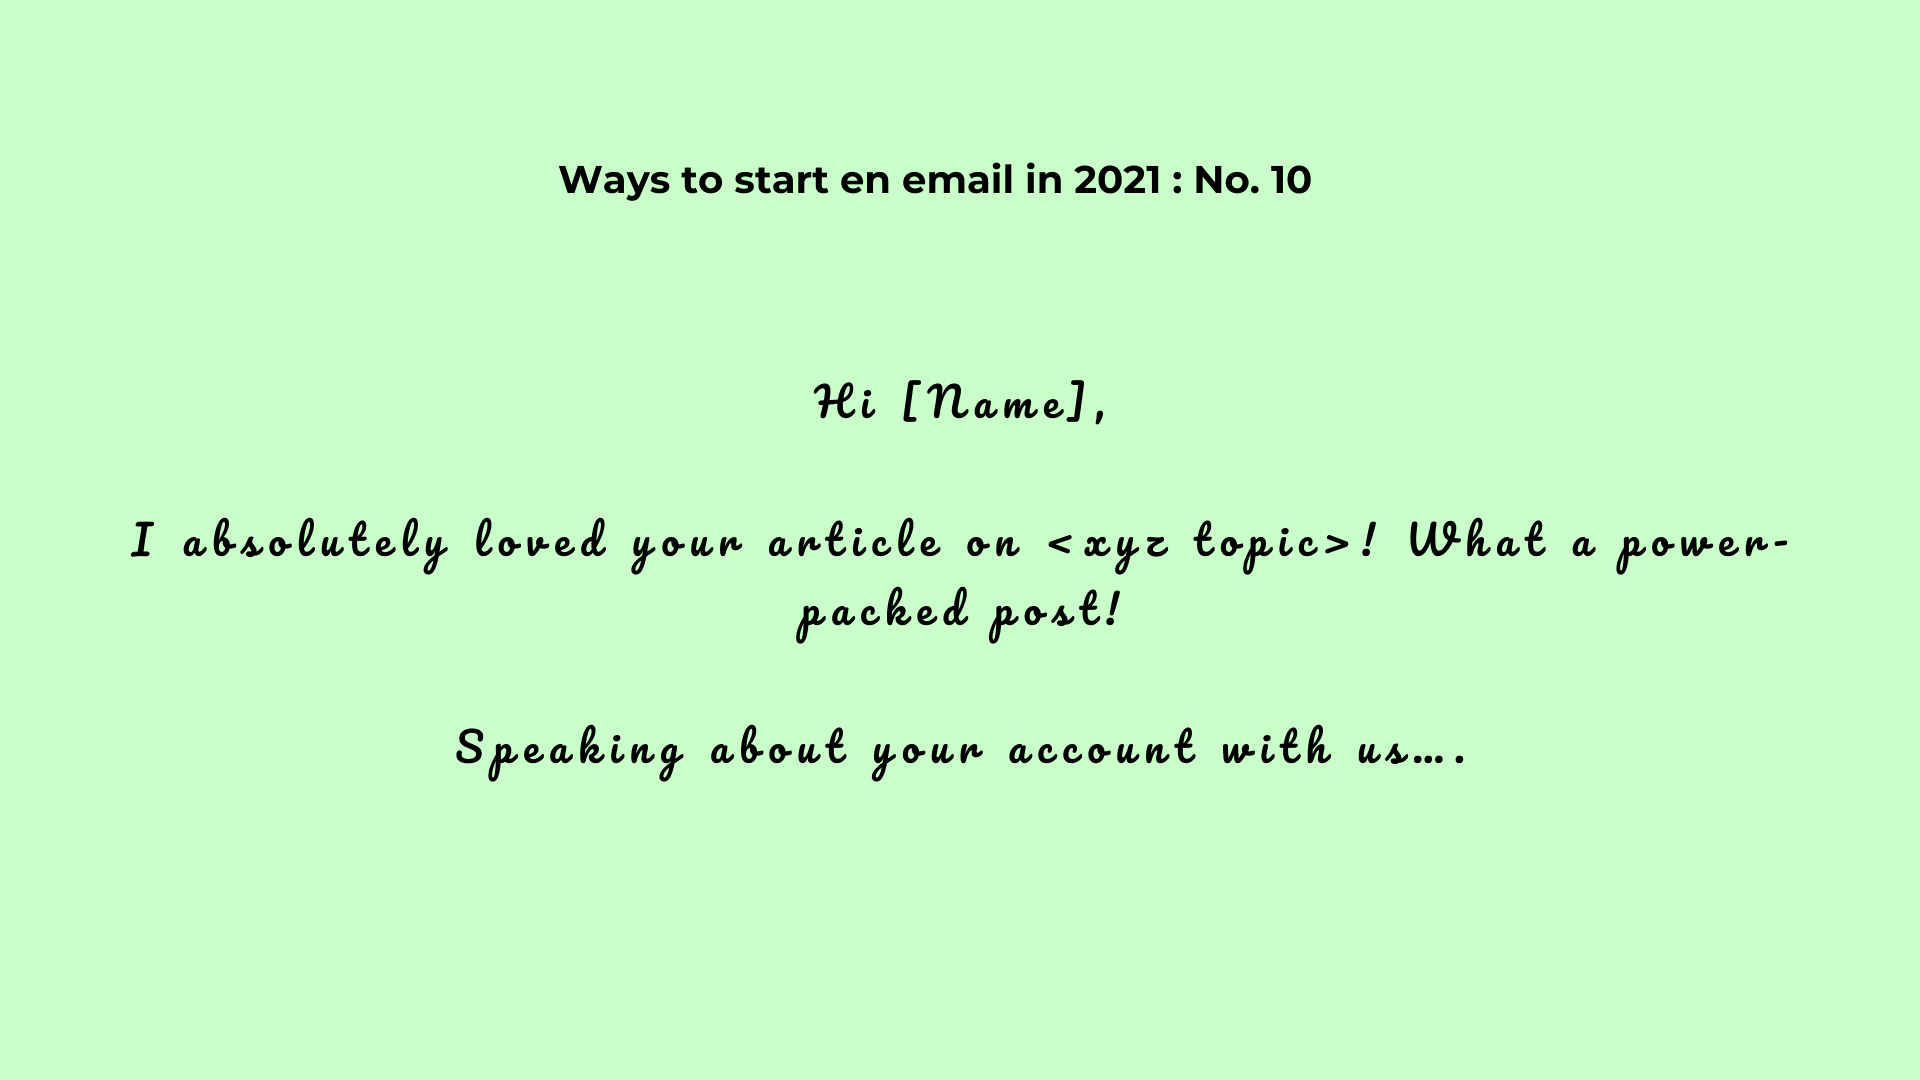 19-ways-to-start-an email-way10